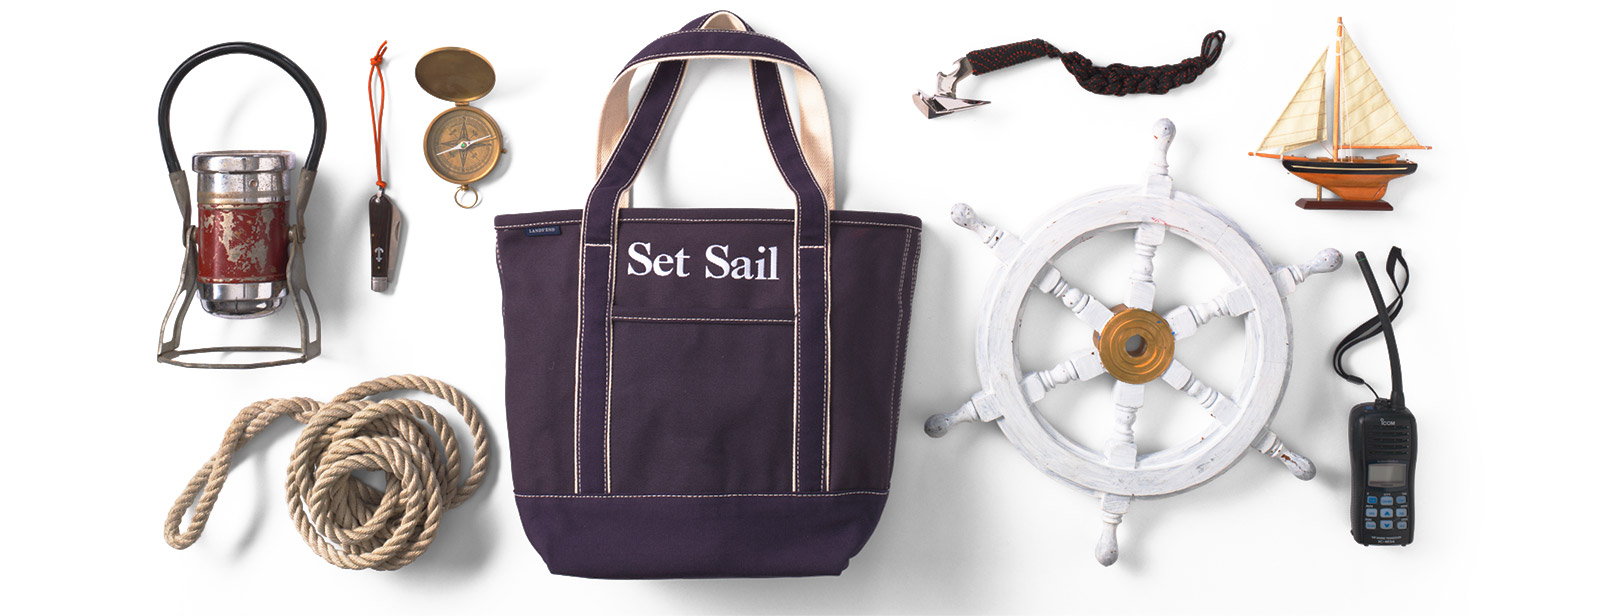 Lands End – Personalized Bag Chairs